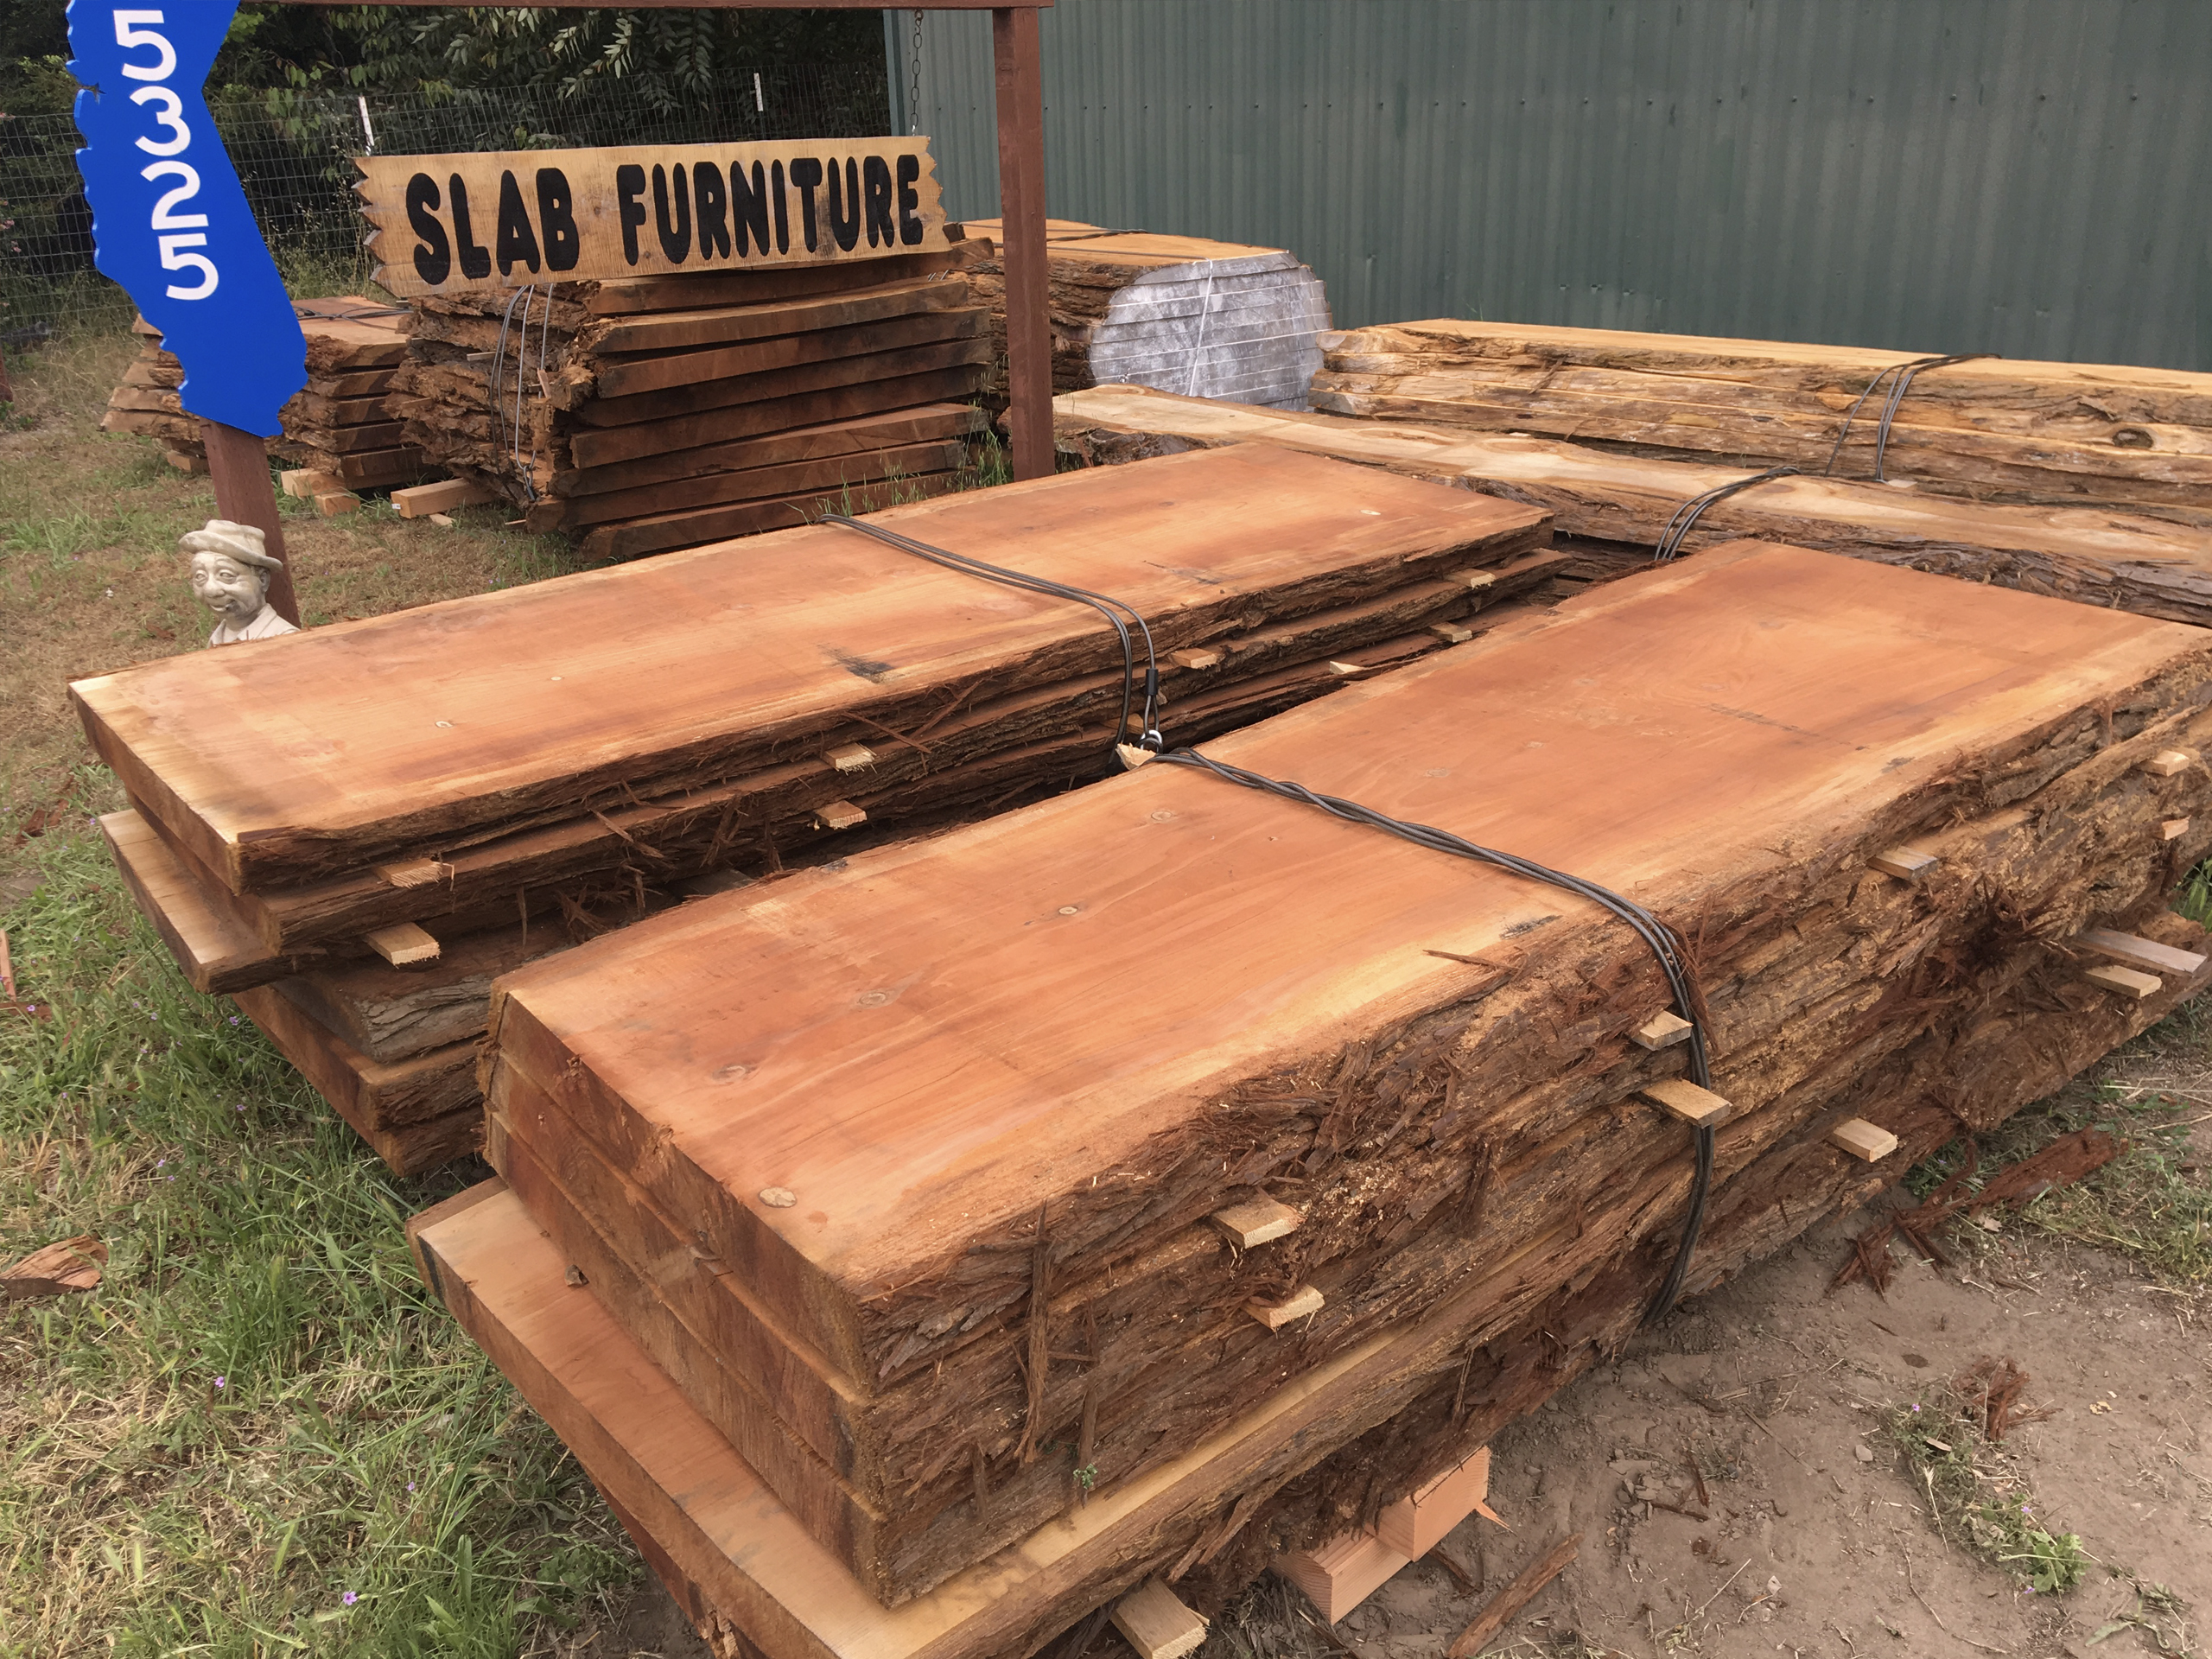 Lumber for Outdoor Projects